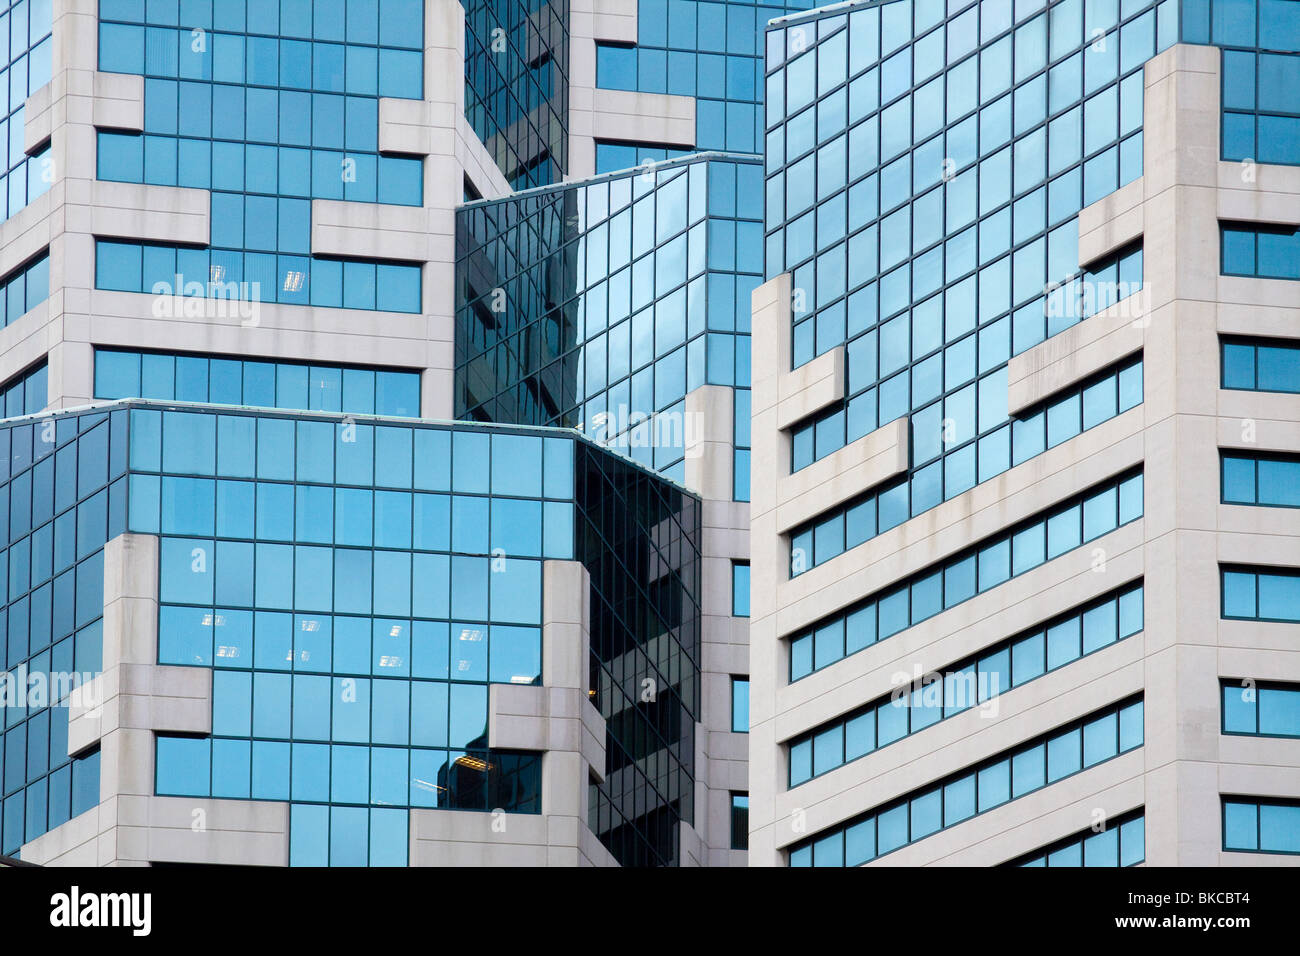 Detail of modern architecture of the Westin San Diego hotel in downtown San Diego California - Stock Image